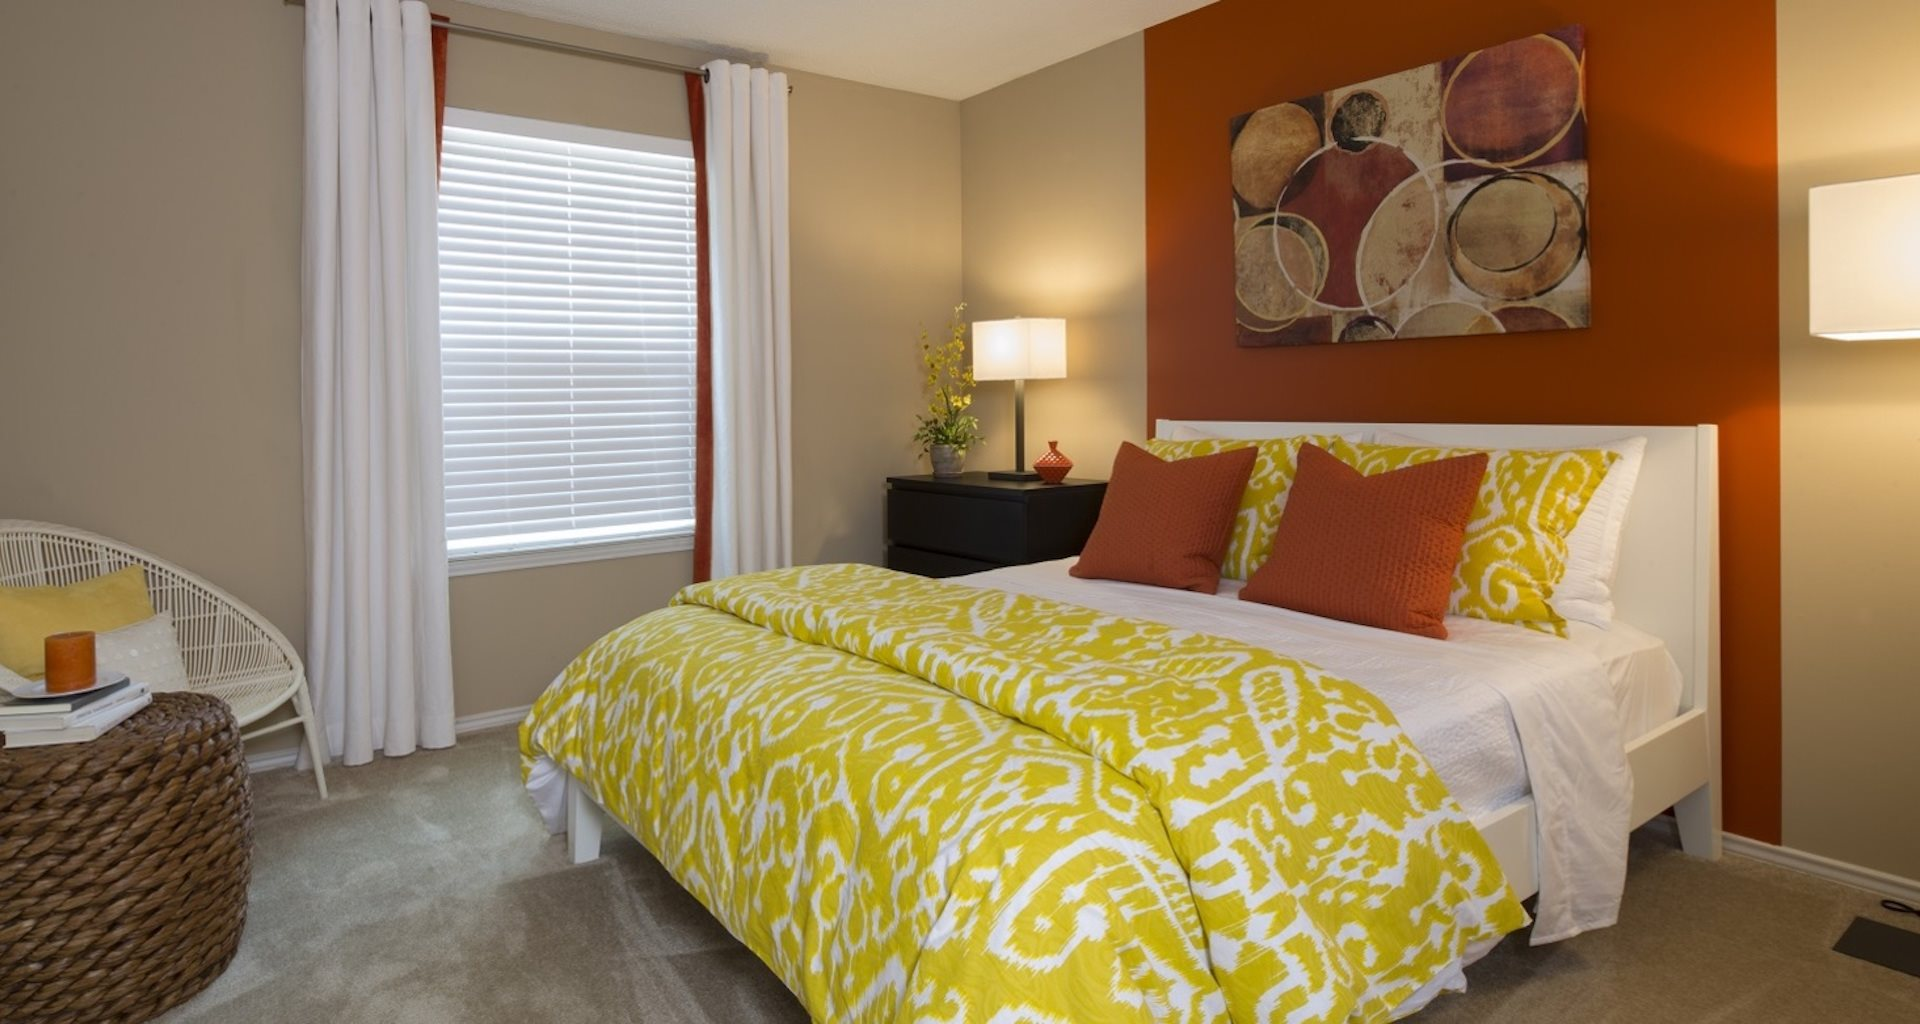 luxurious bedroom at Grand Highlands at Mountain Brook Apartment Homes Vestavia, Birmingham, AL 35223